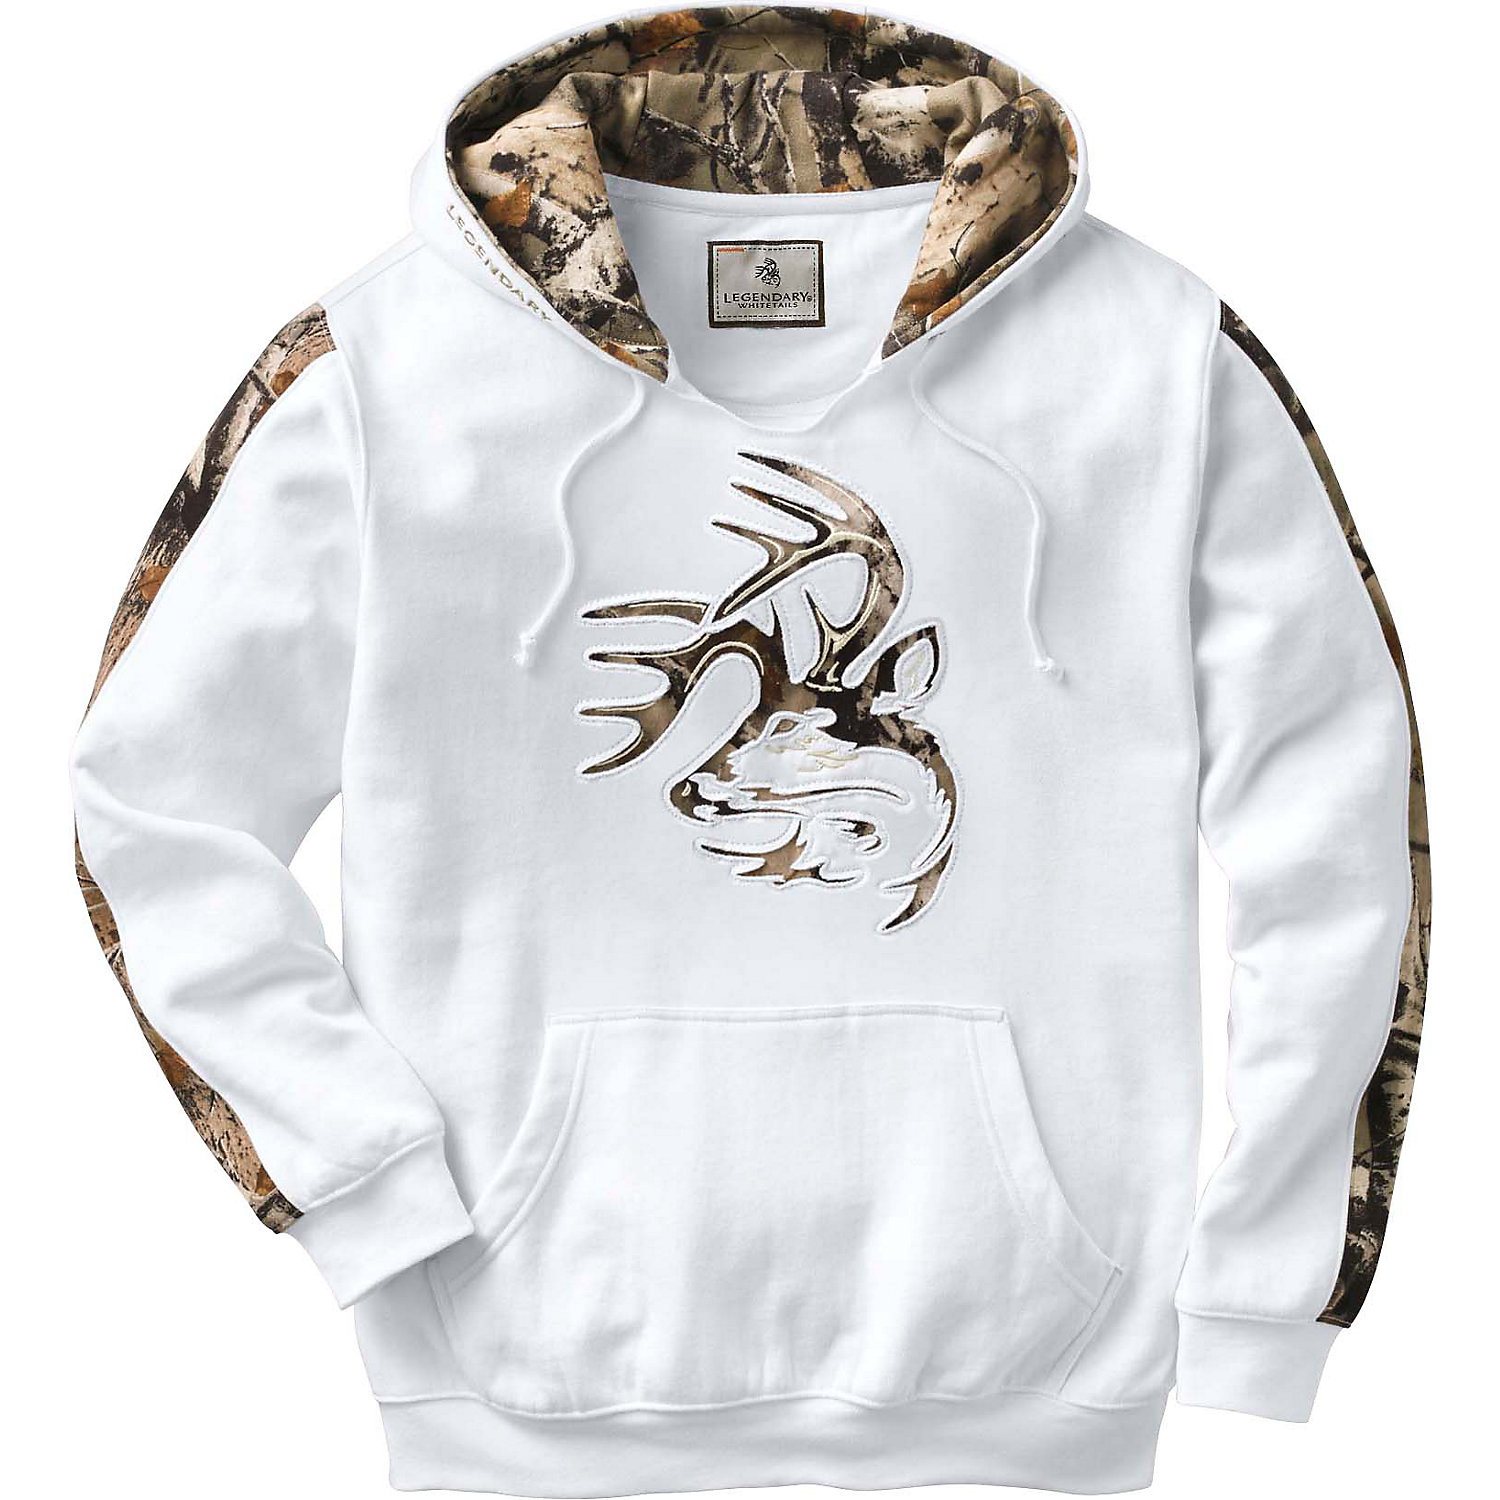 Legendary Whitetails Mens Camo Outfitter Hoodie